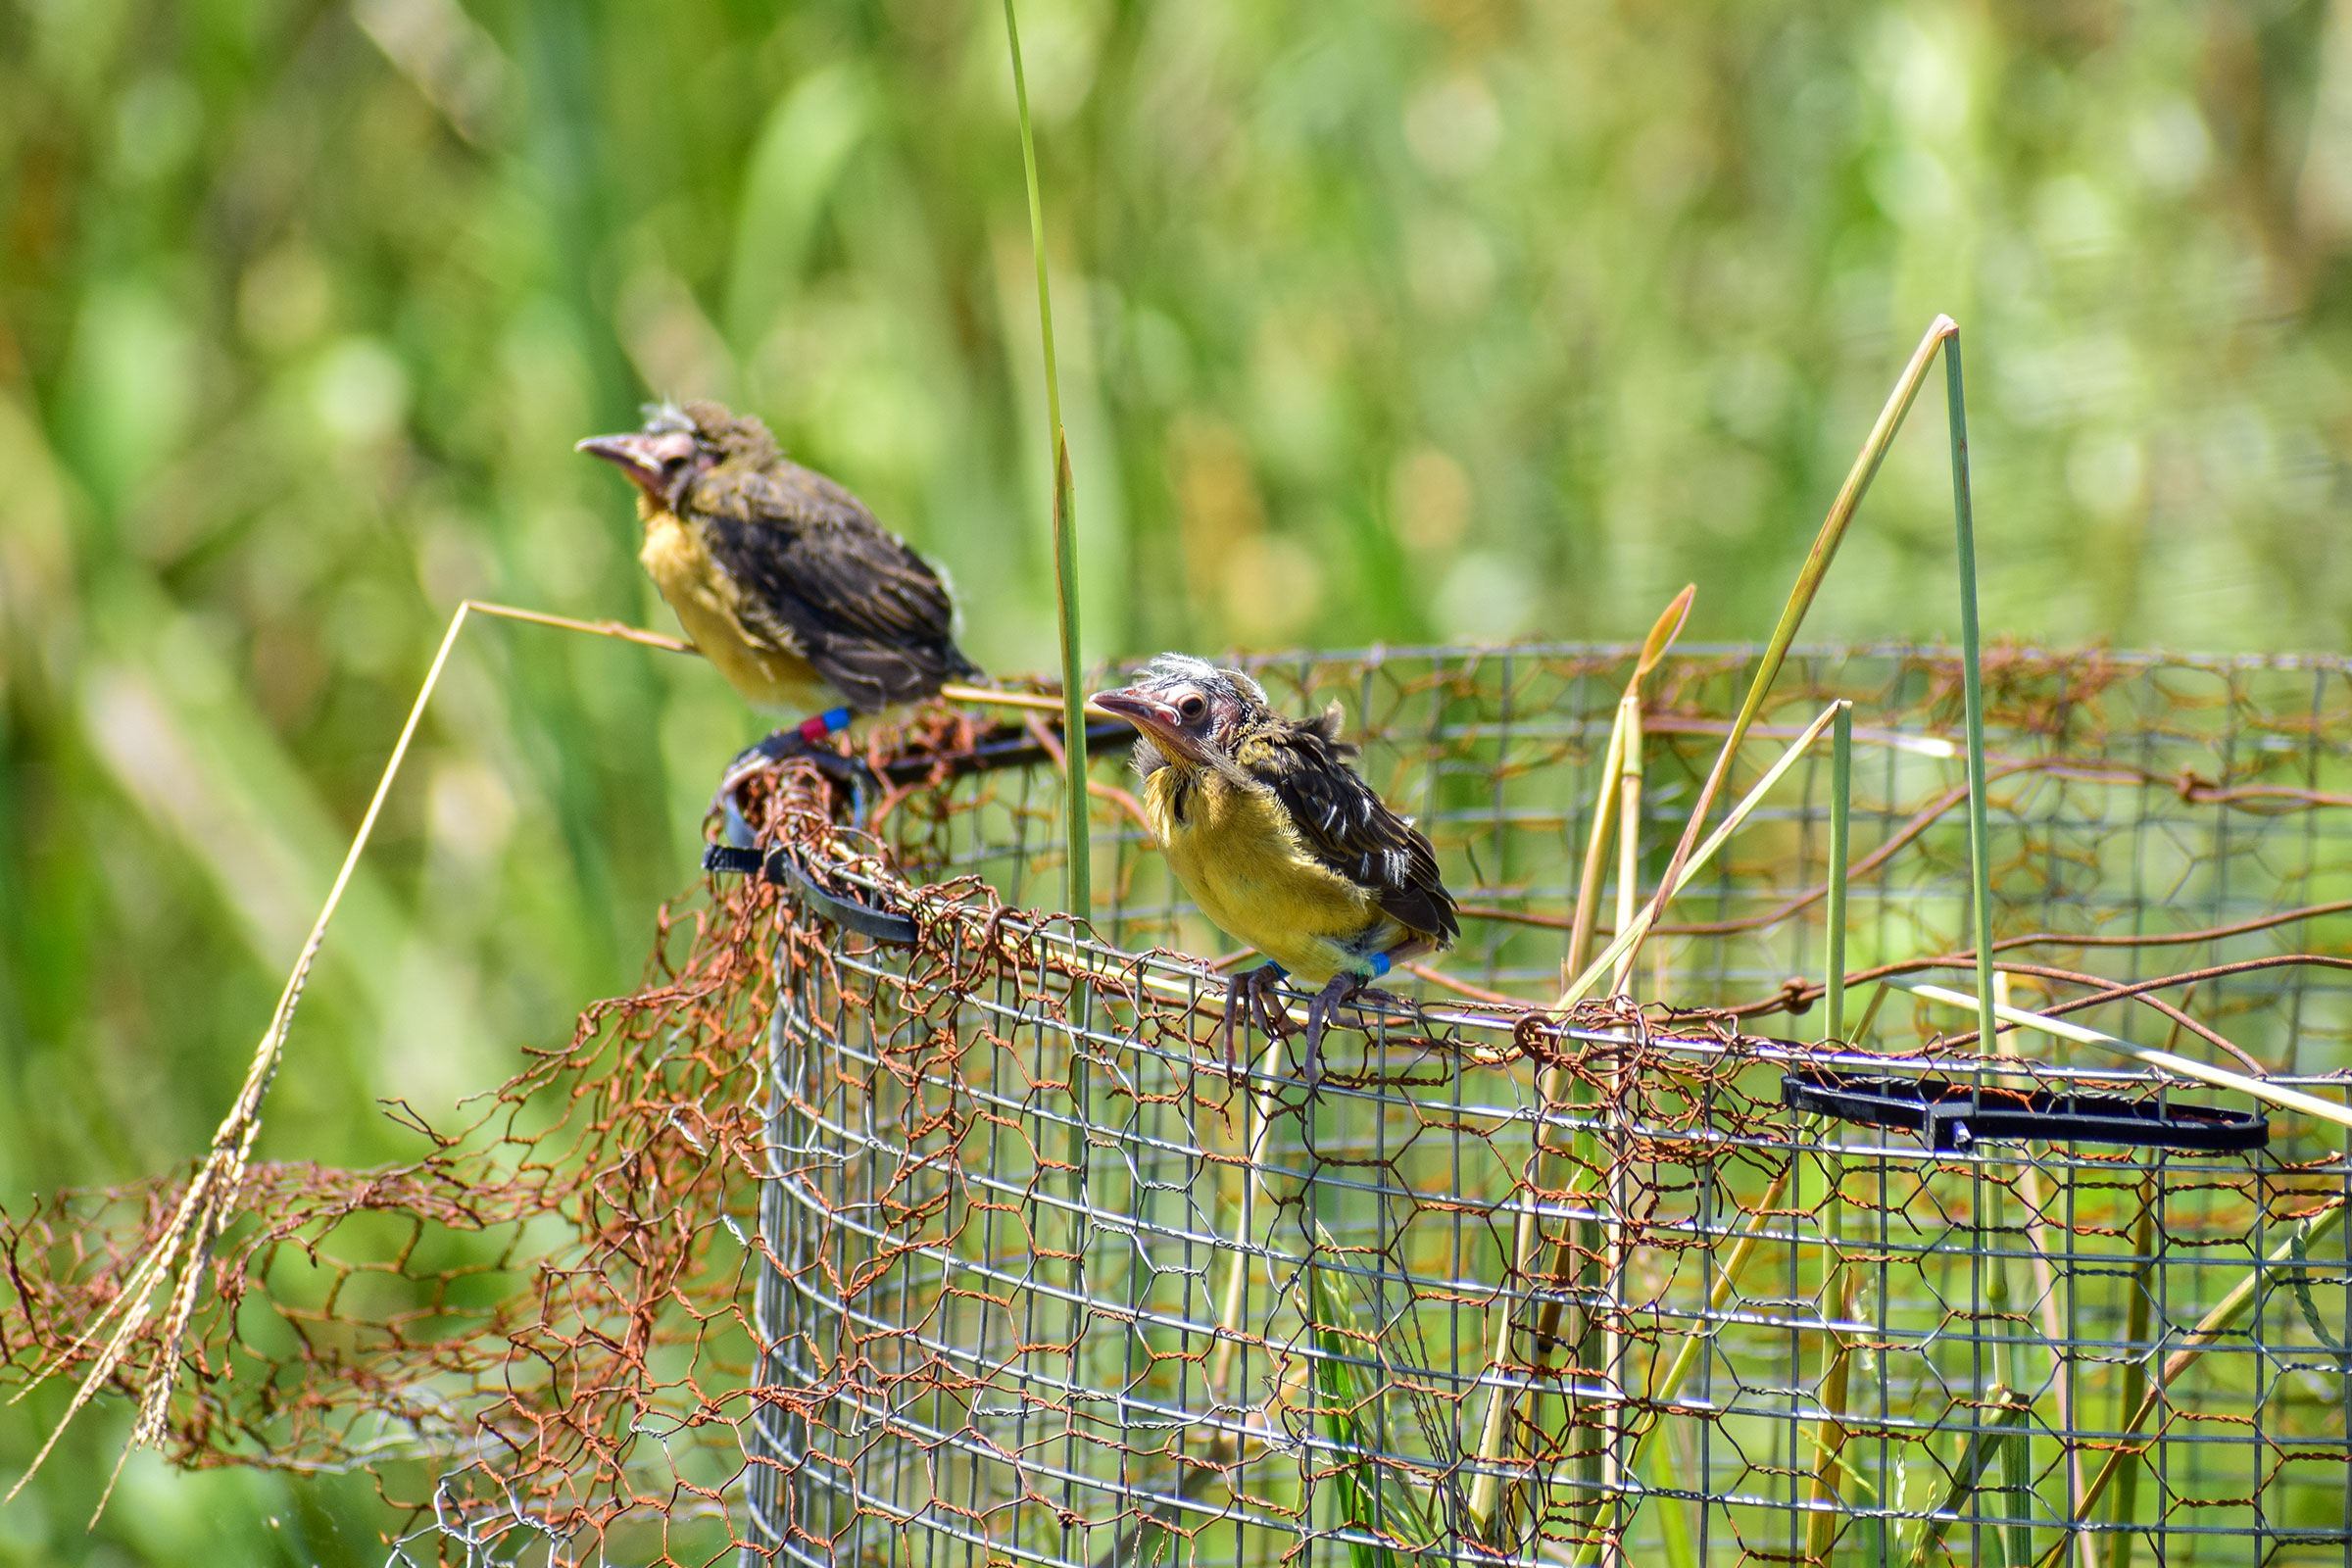 Saffron-cowled Blackbird fledglings leaving the protected nest. Proyecto Tordo Amarillo